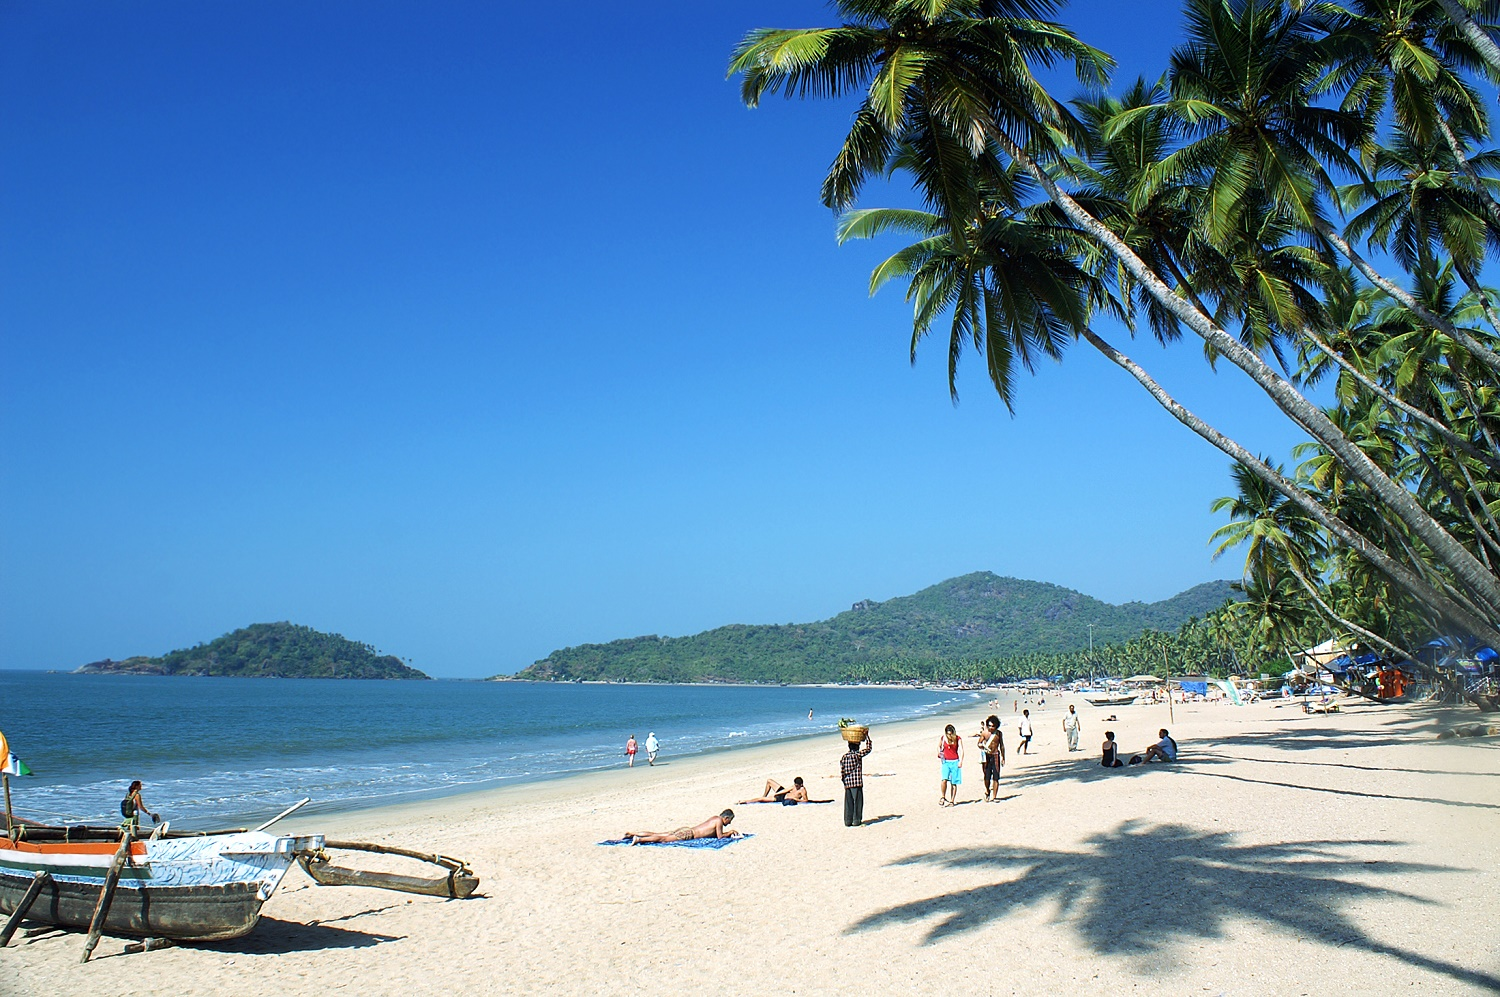 Agonda Beach in South Goa